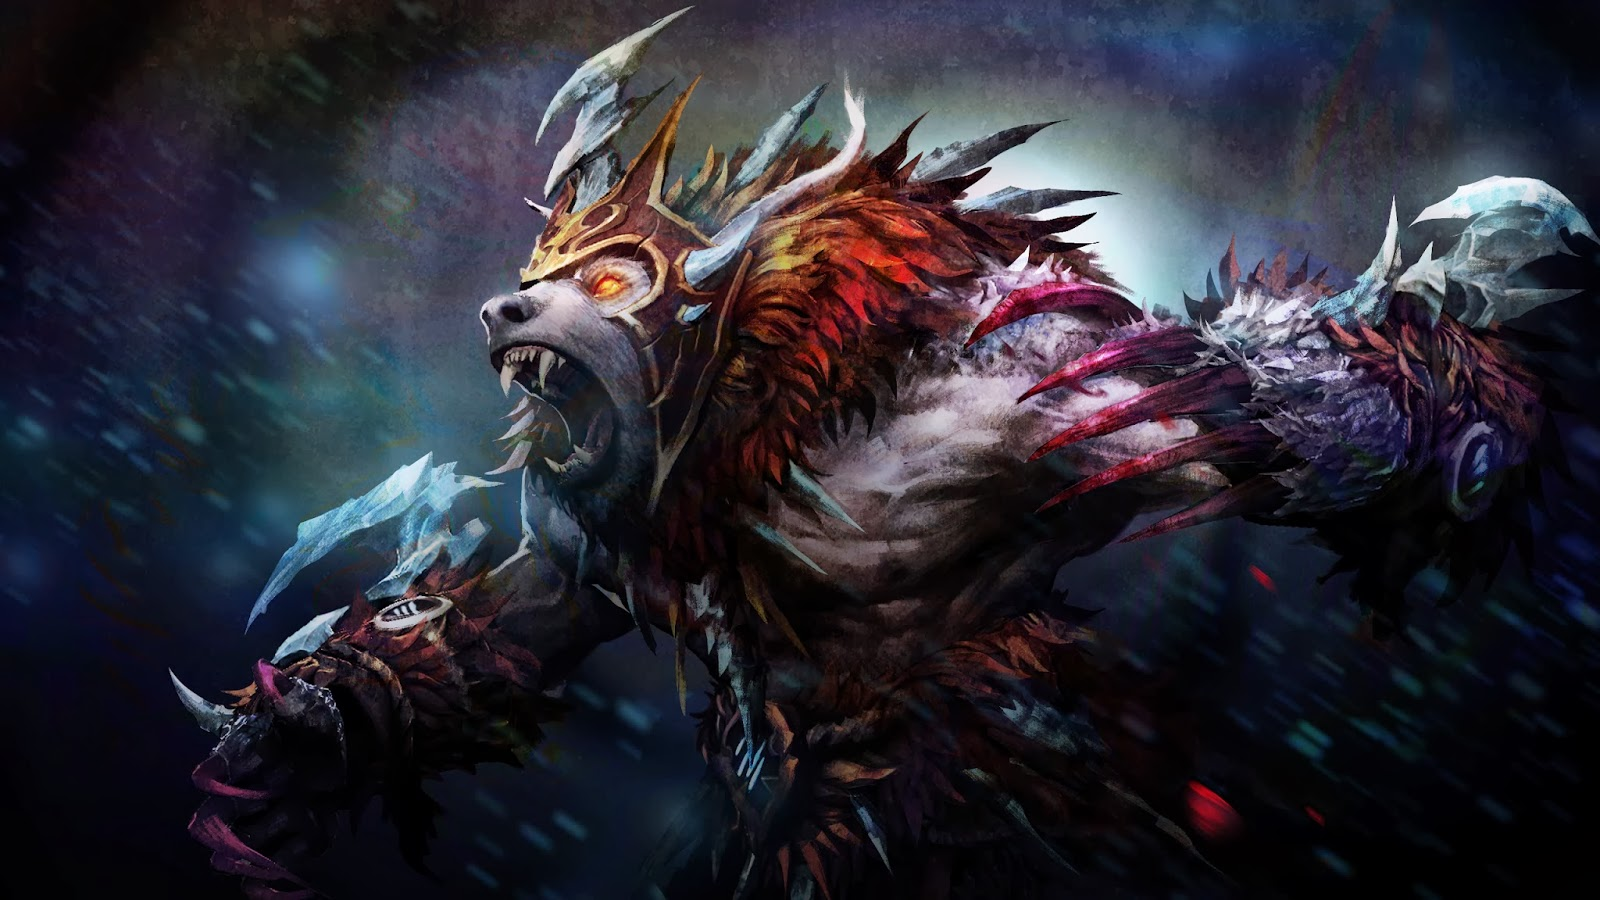 Dota 2 Wallpapers: Dota 2 Wallpaper HD - Ursa